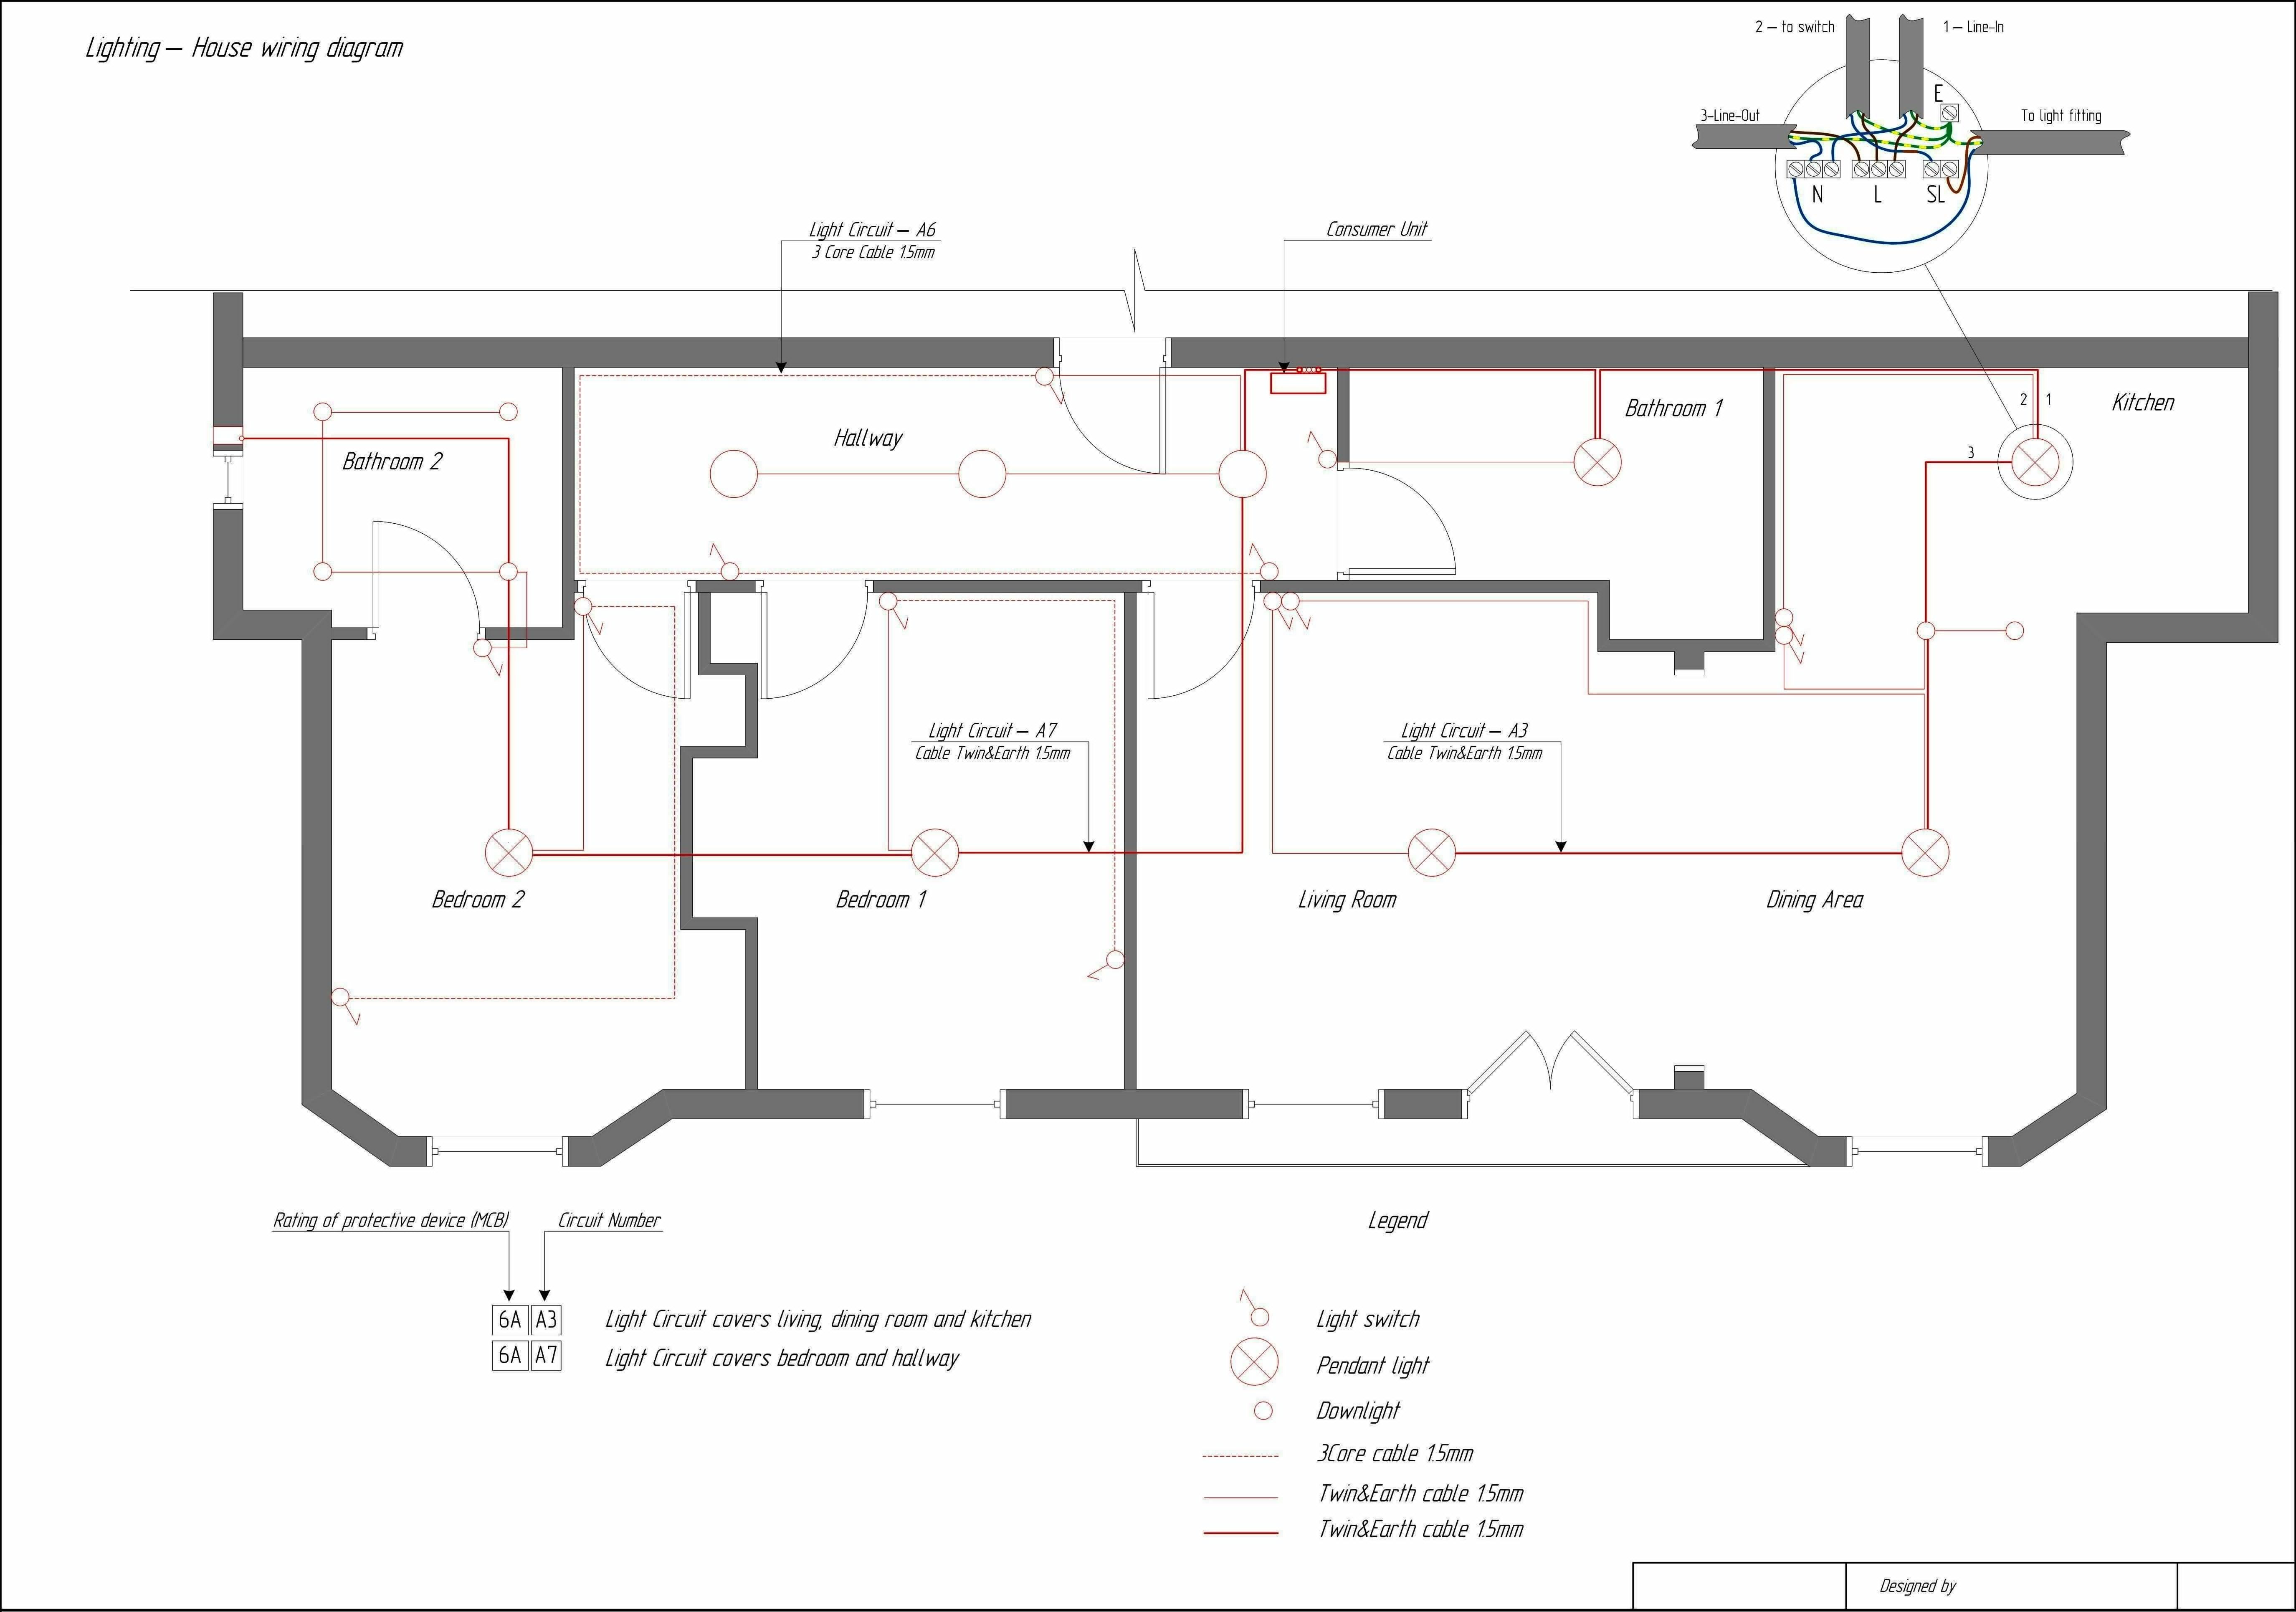 remotetour co remotetour co rv park 50 and wiring diagram rv park electrical wiring diagrams uml state diagram